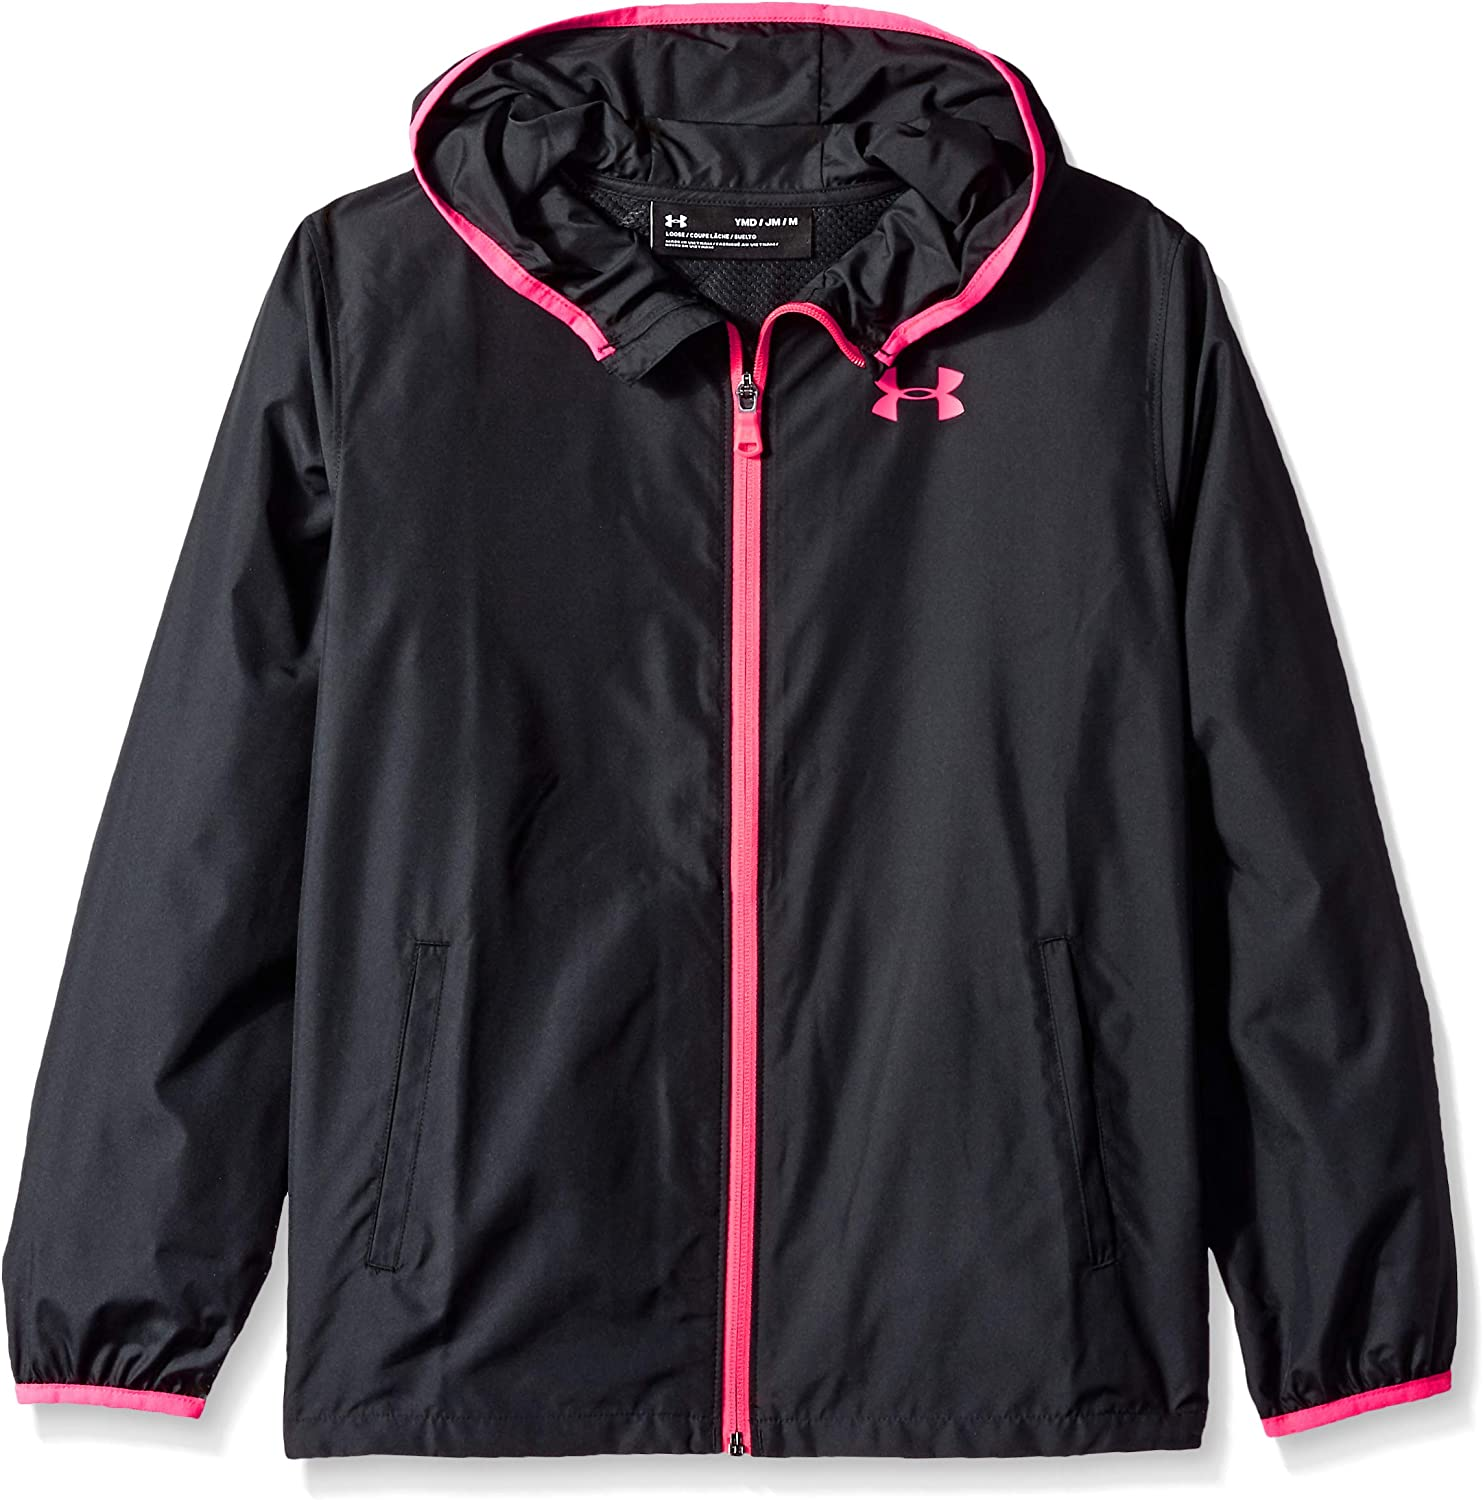 falso añadir Mal uso  Amazon.com: Under Armour girls Under Armour Girls Sack Pack Full Zip Jacket:  Clothing